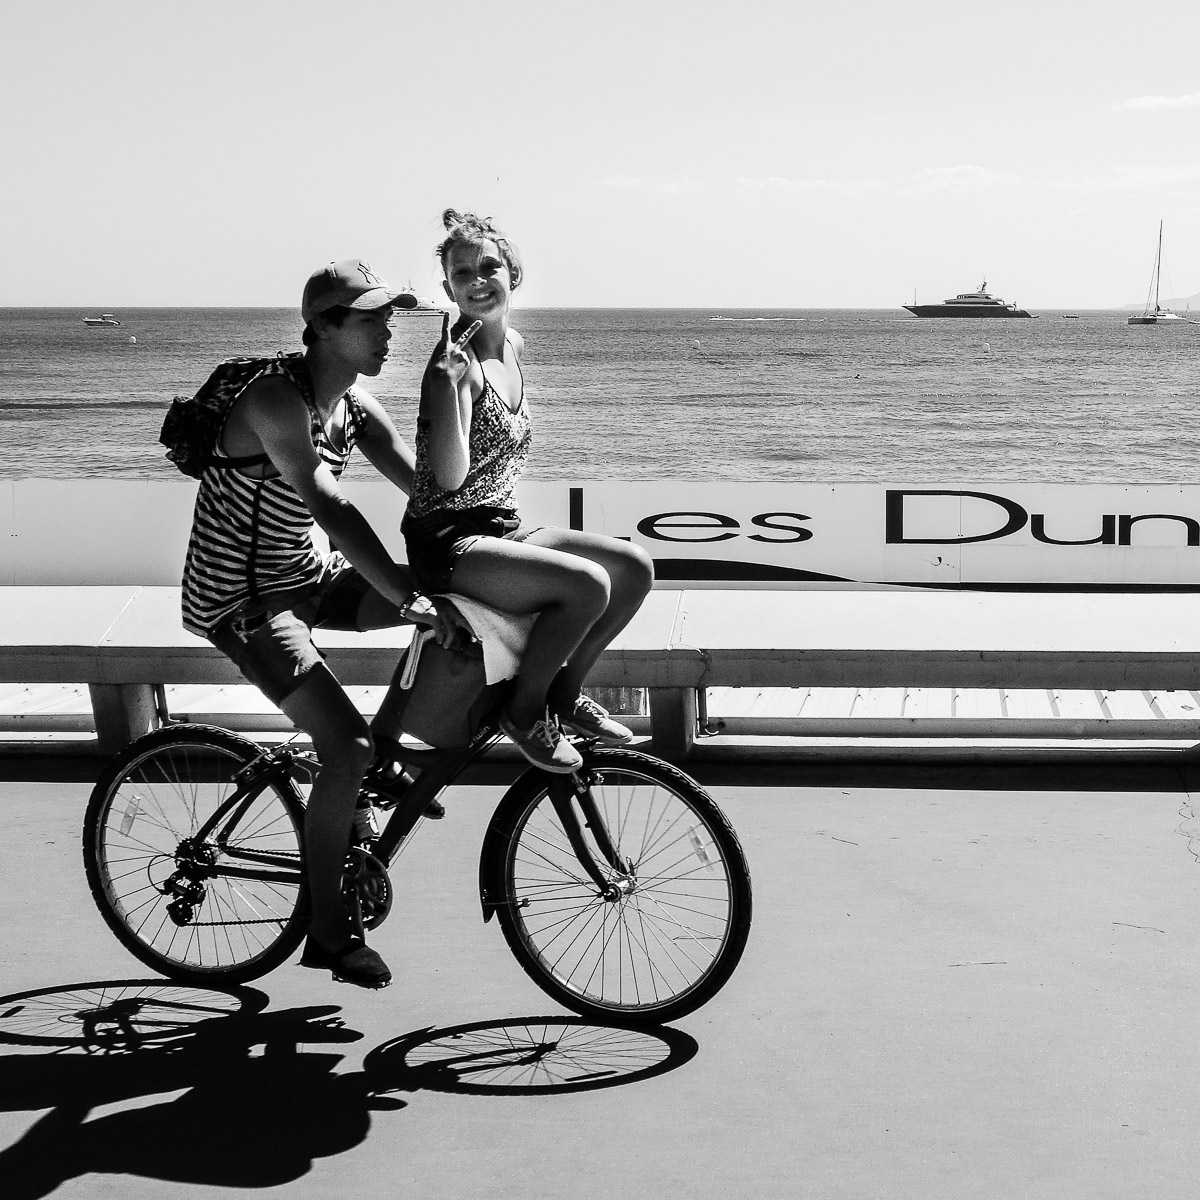 Côte d'Azur - streets of Cannes, Photo: Stephan Redel